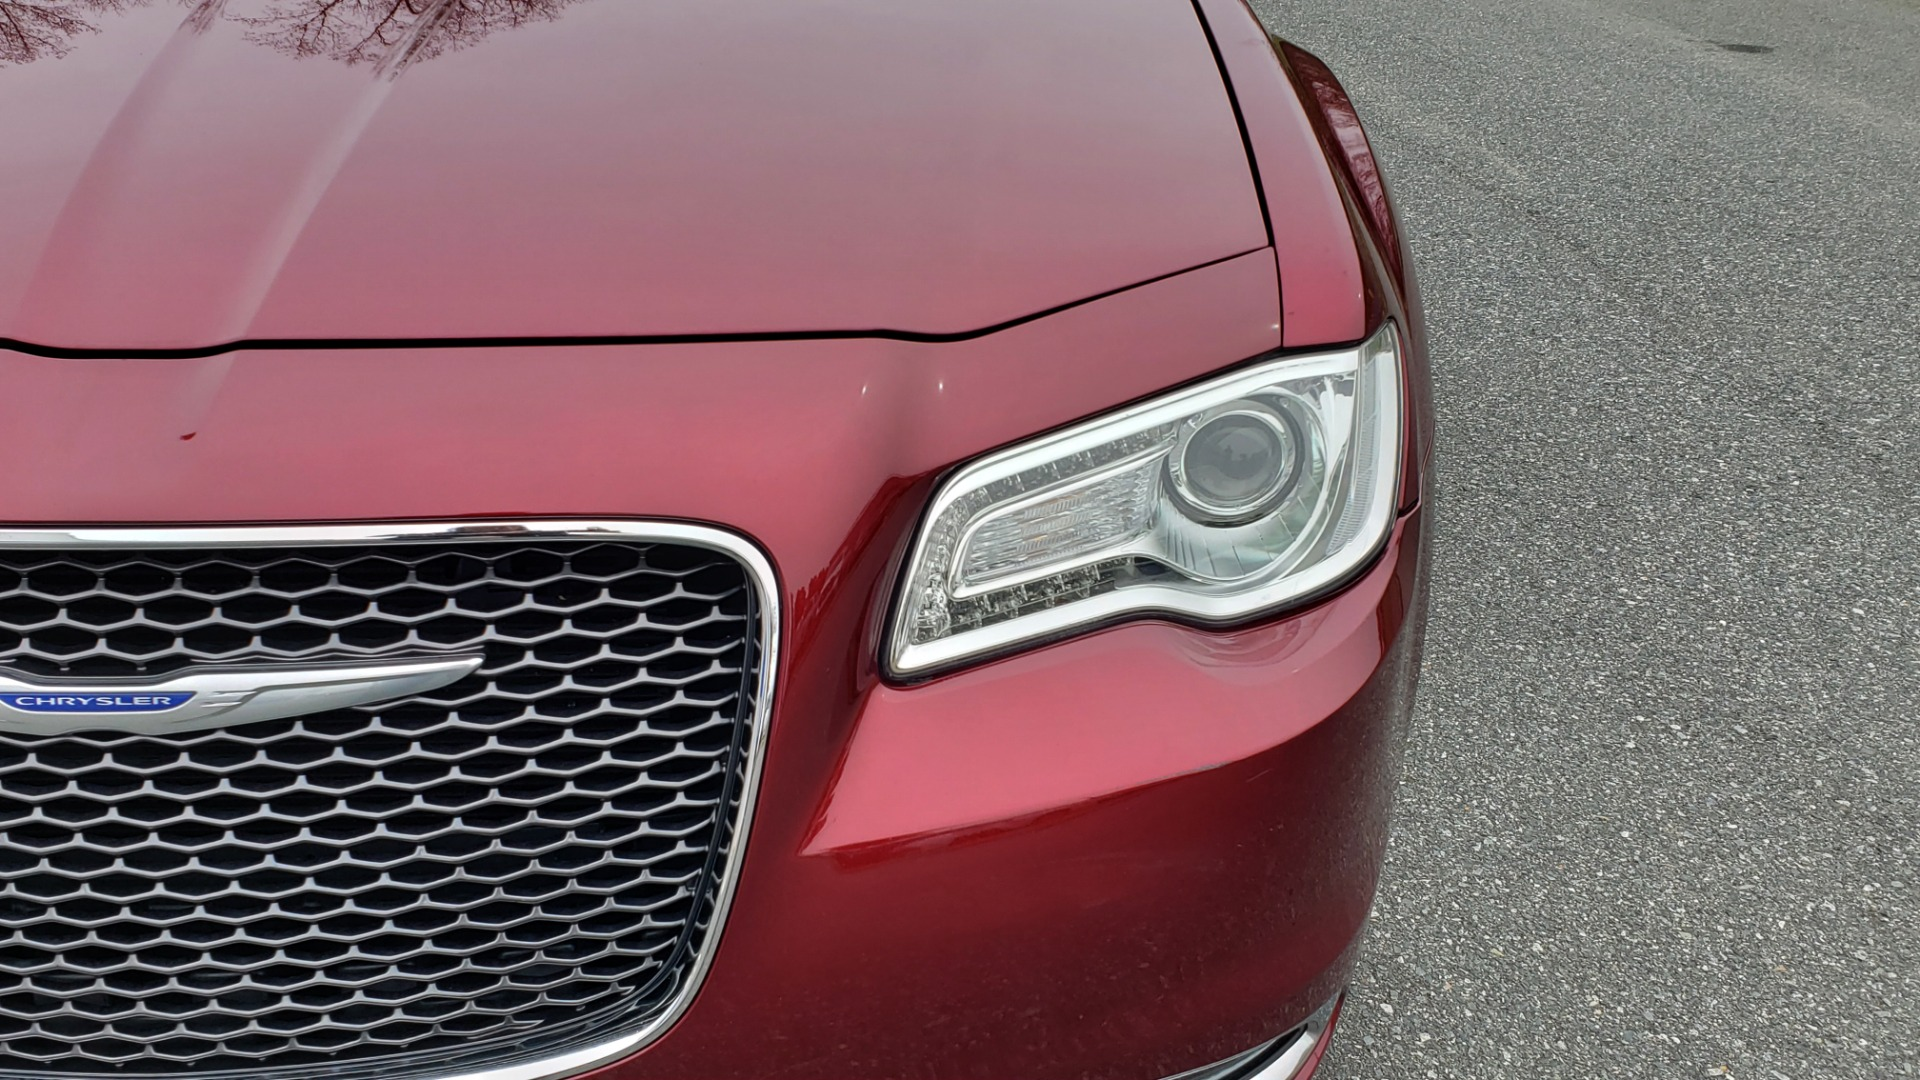 Used 2019 Chrysler 300 LIMITED / 3.6L V6 / 8-SPD AUTO / LEATHER / REARVIEW for sale Sold at Formula Imports in Charlotte NC 28227 27